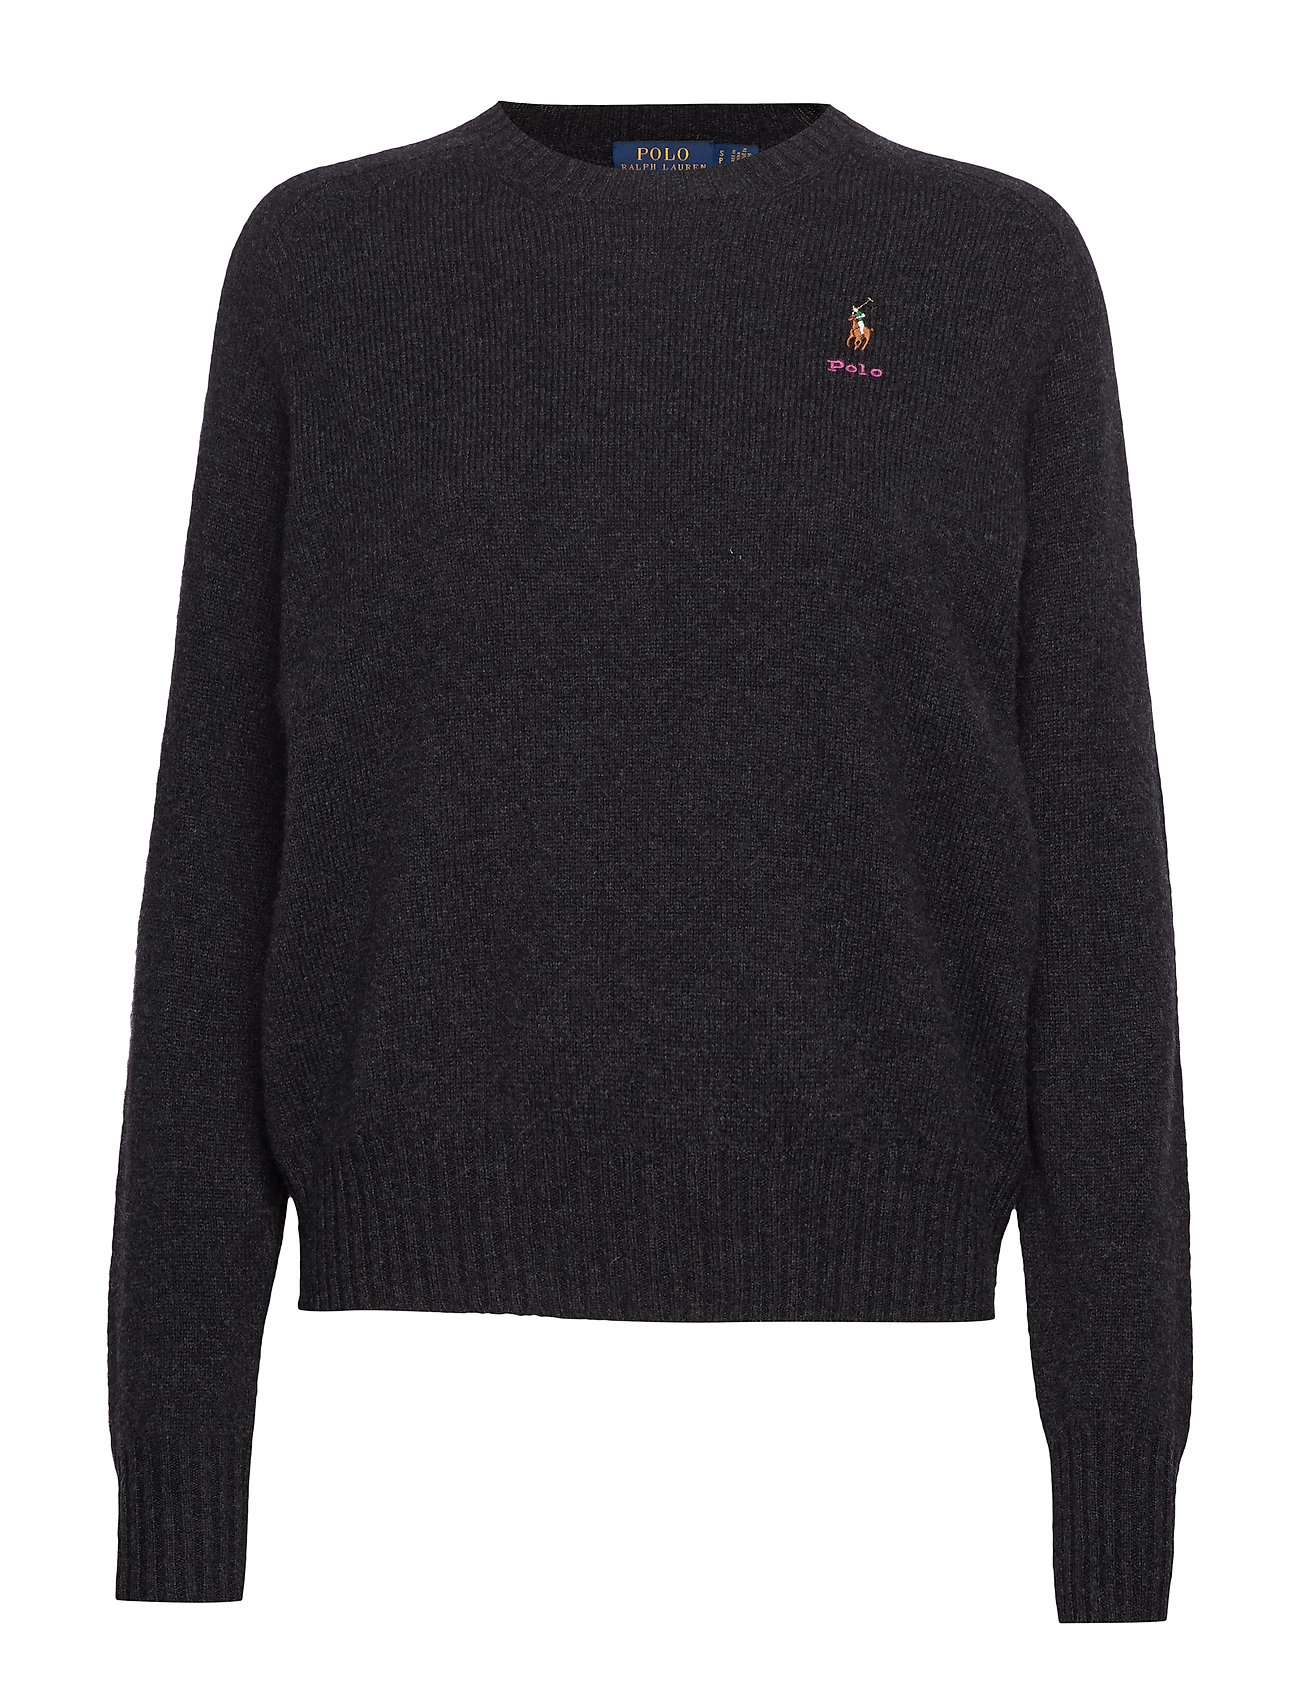 Polo Ralph Lauren Wool Crewneck Sweater - CHARCOAL HEATHER